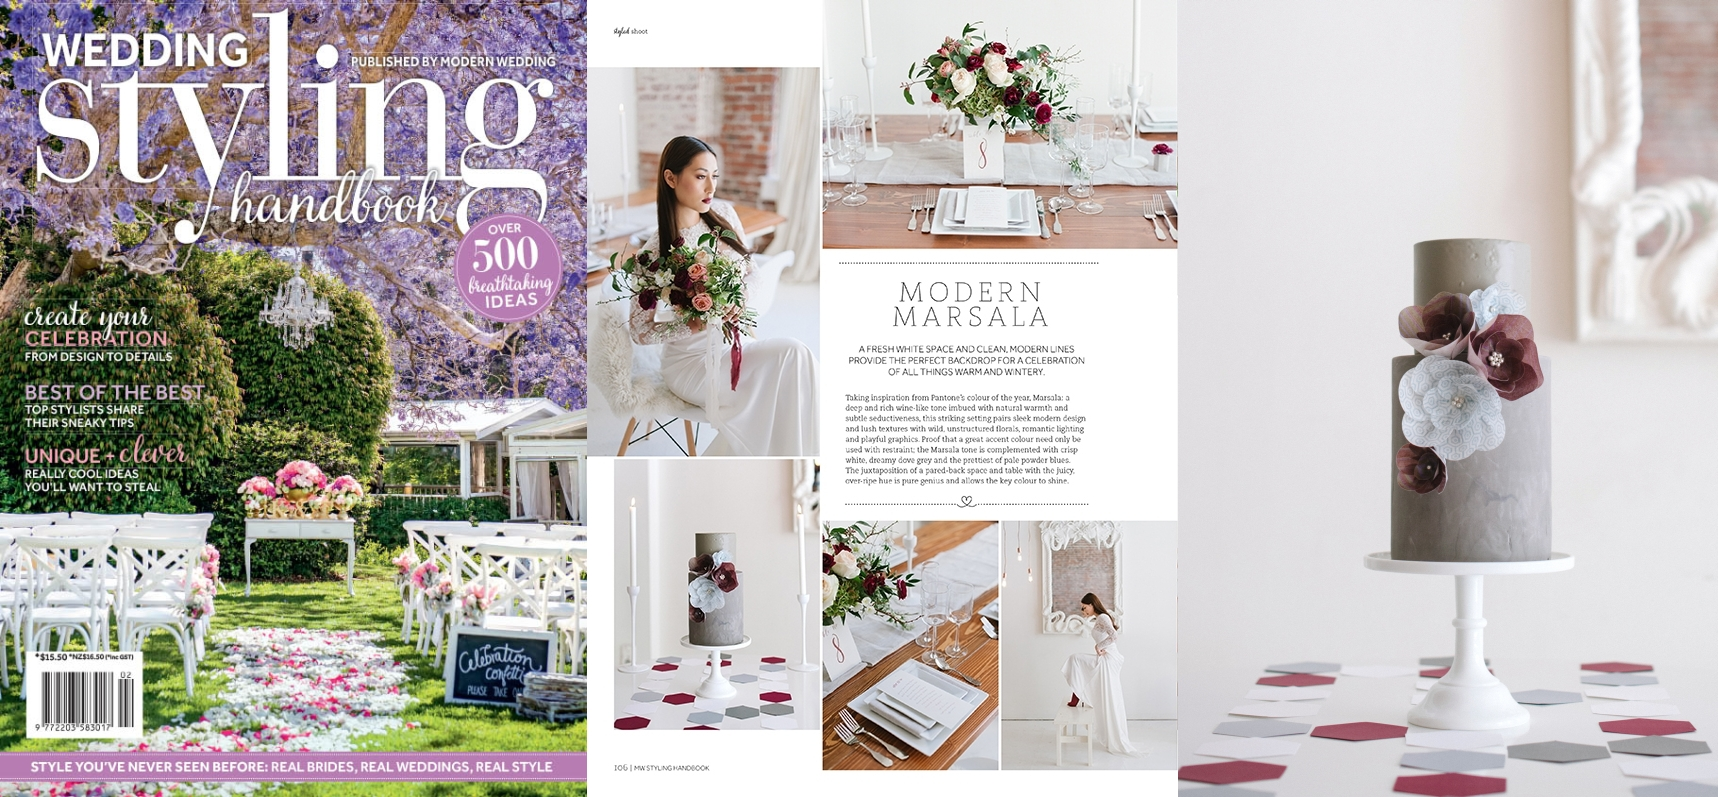 Modern Wedding Styling Handbook (Australia), Issue 2, published July 2015